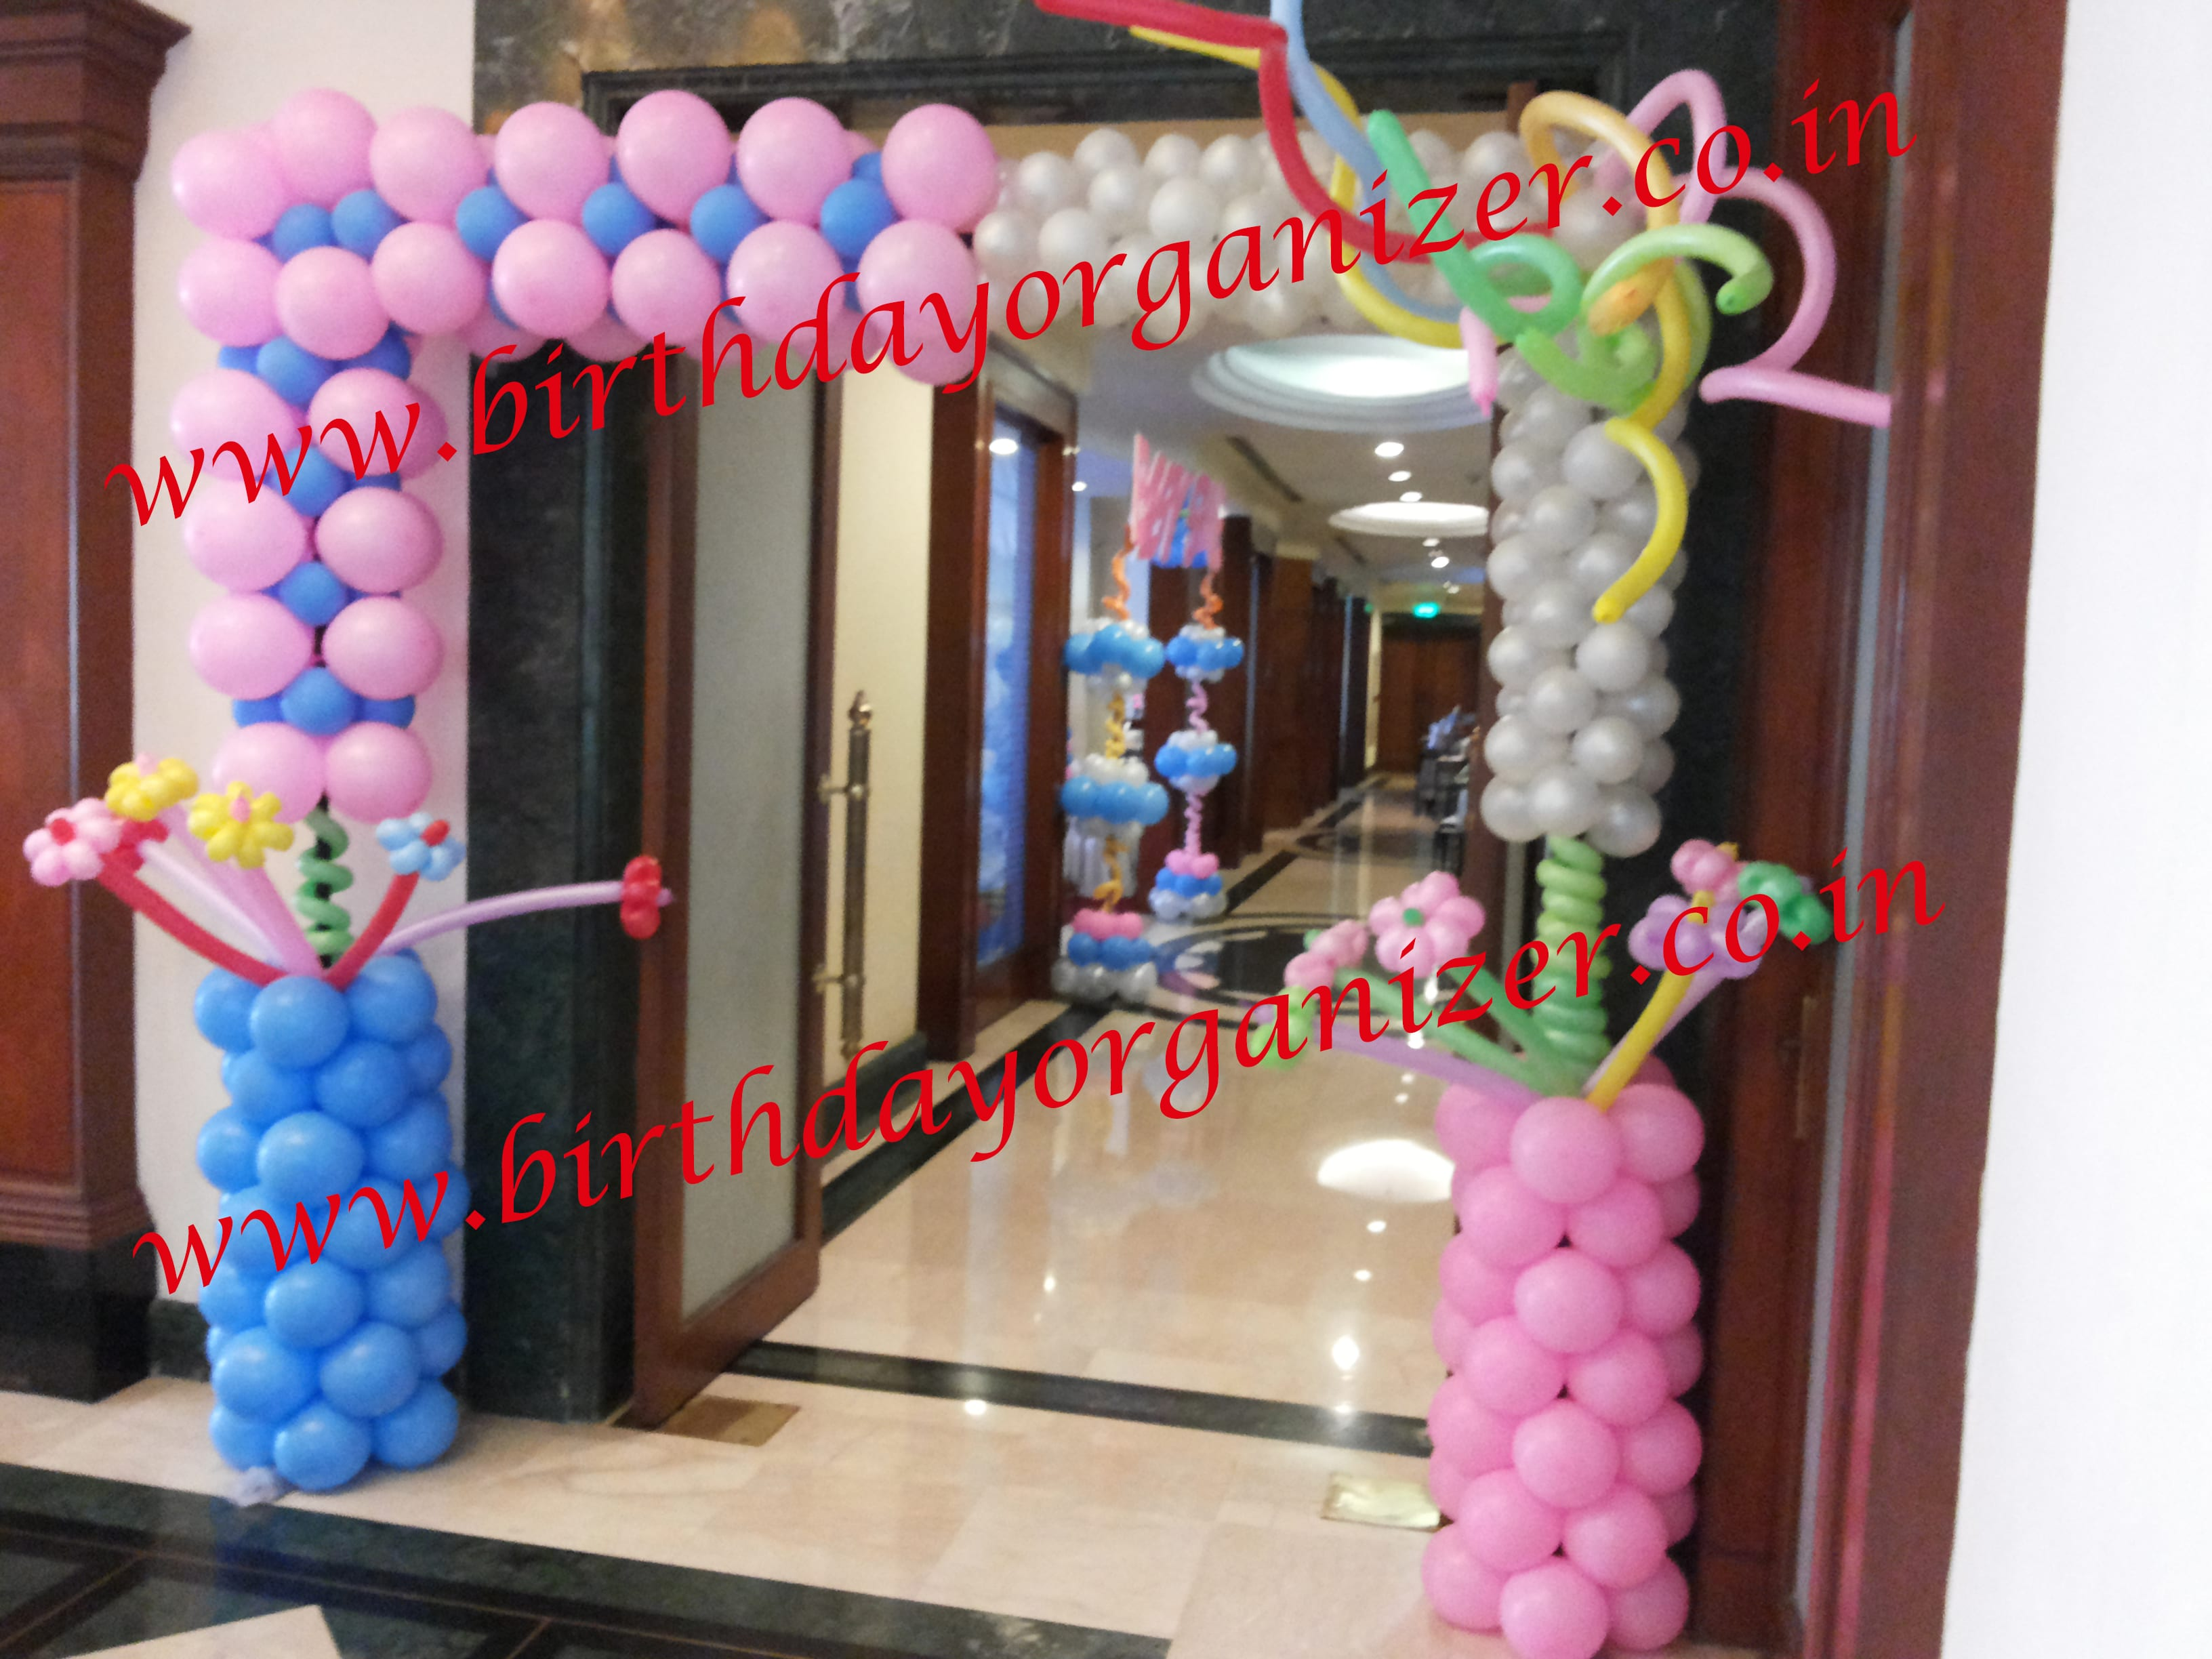 Baby shower entrance decoration in noida, Baby shower entrance decoration in delhi ncr gurgaon,